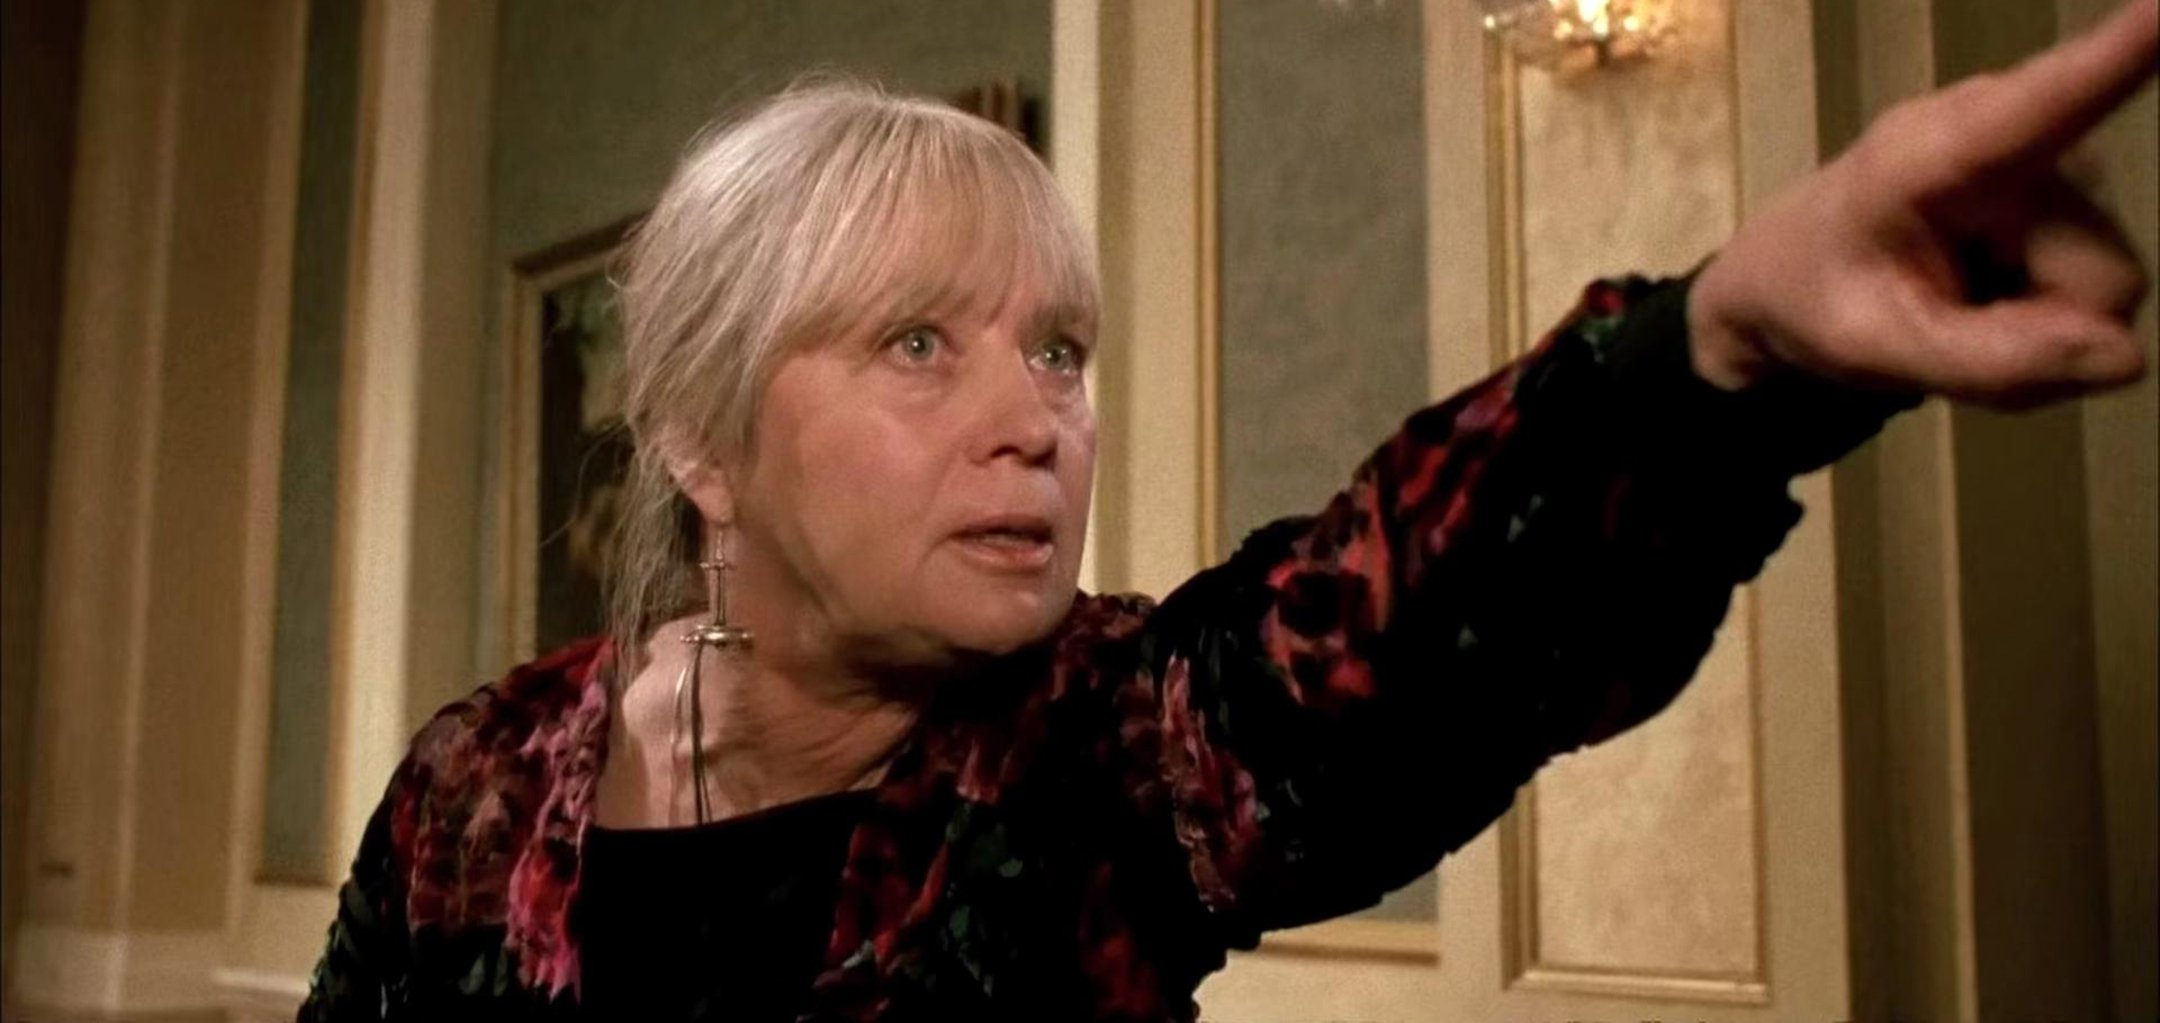 Mai Zetterling as Grandma Helga pointing in a still from ' The Witches' (1990)